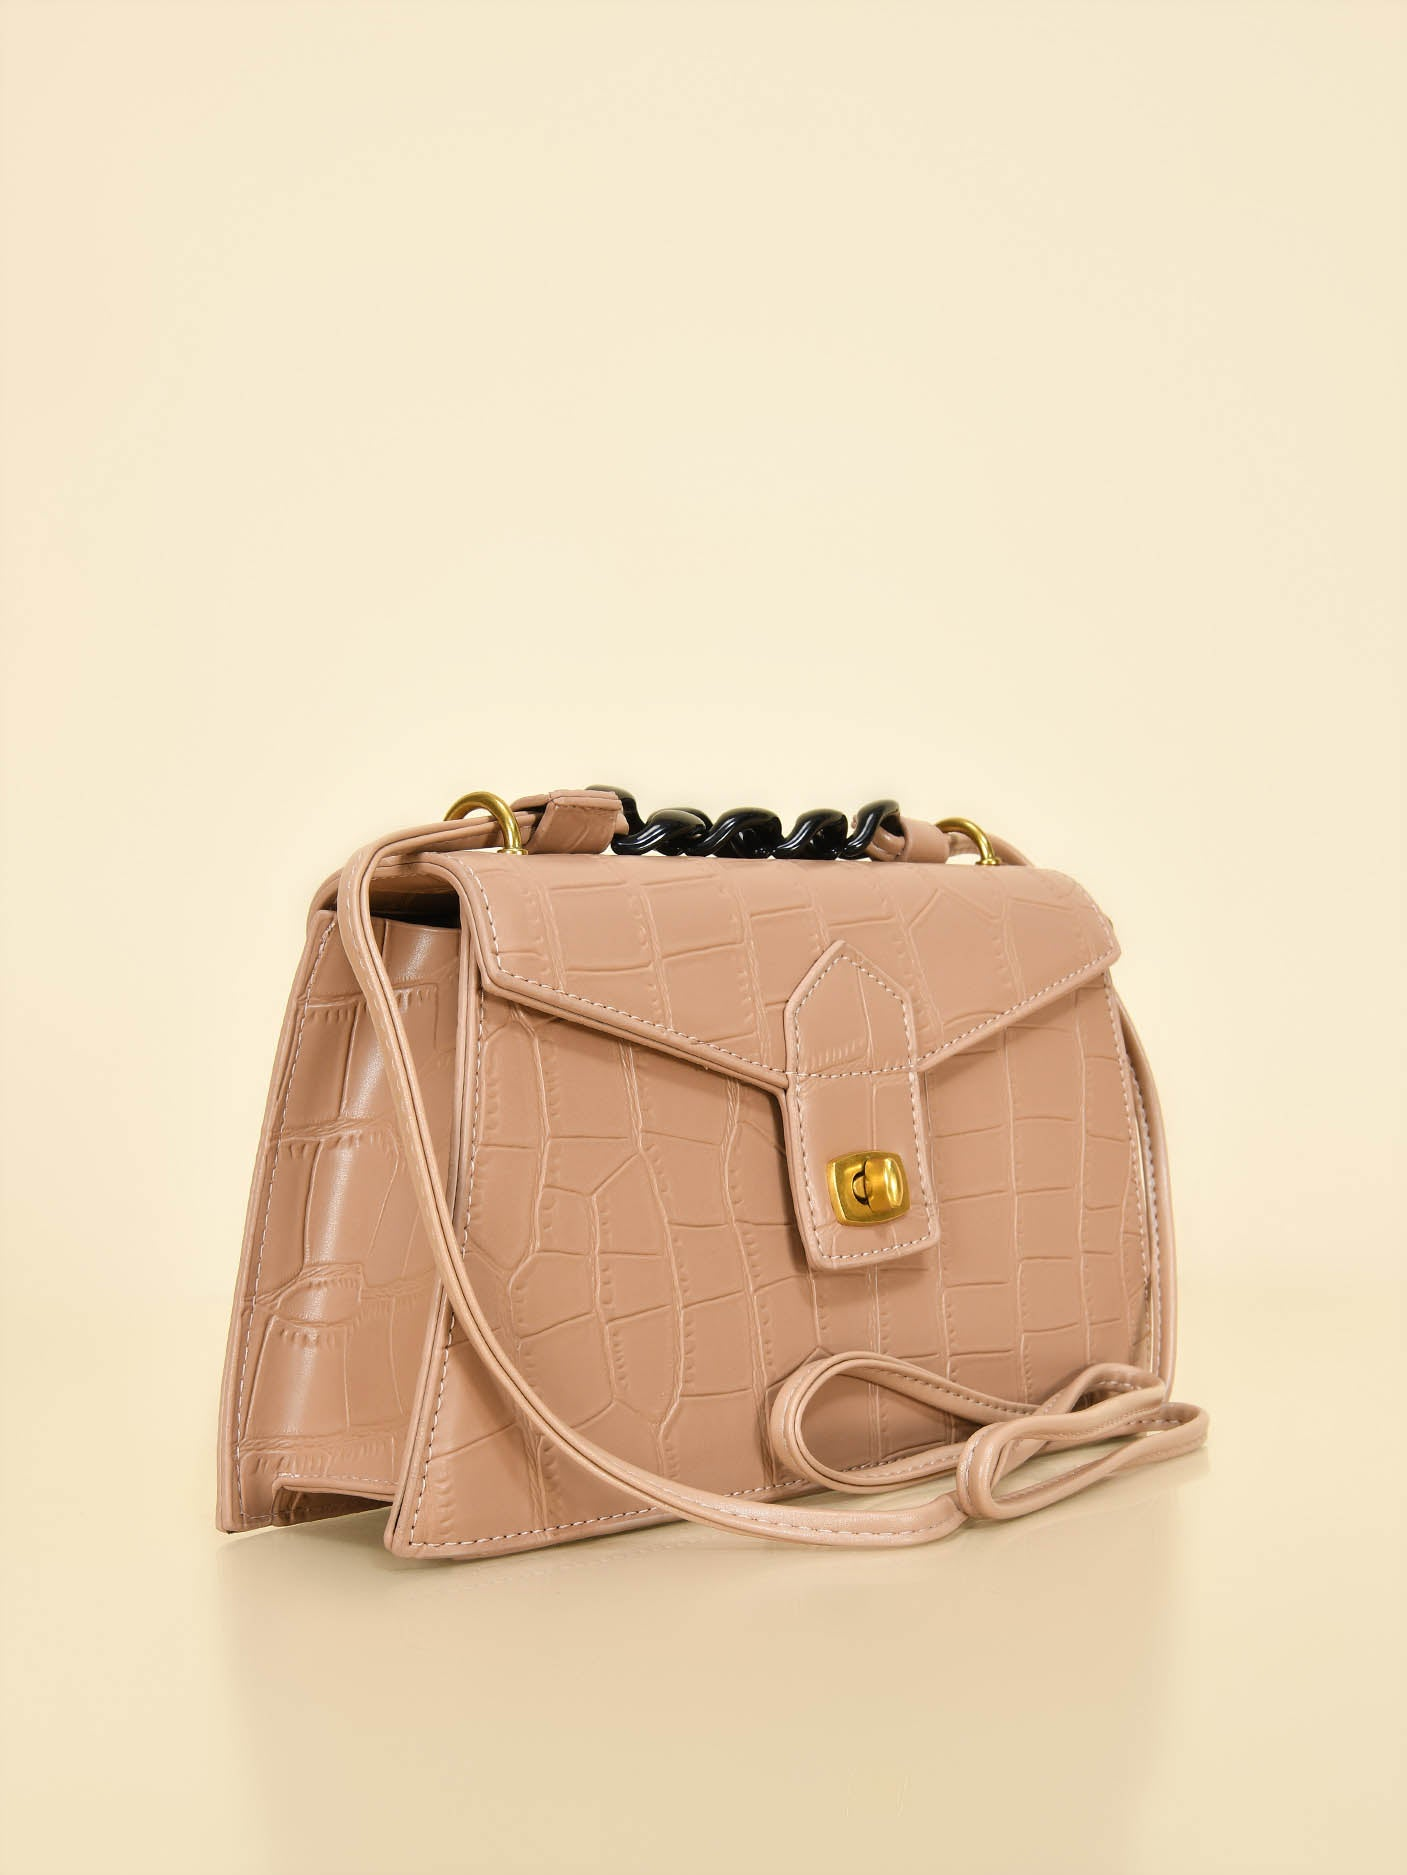 Trapezoid Patterened Handbag